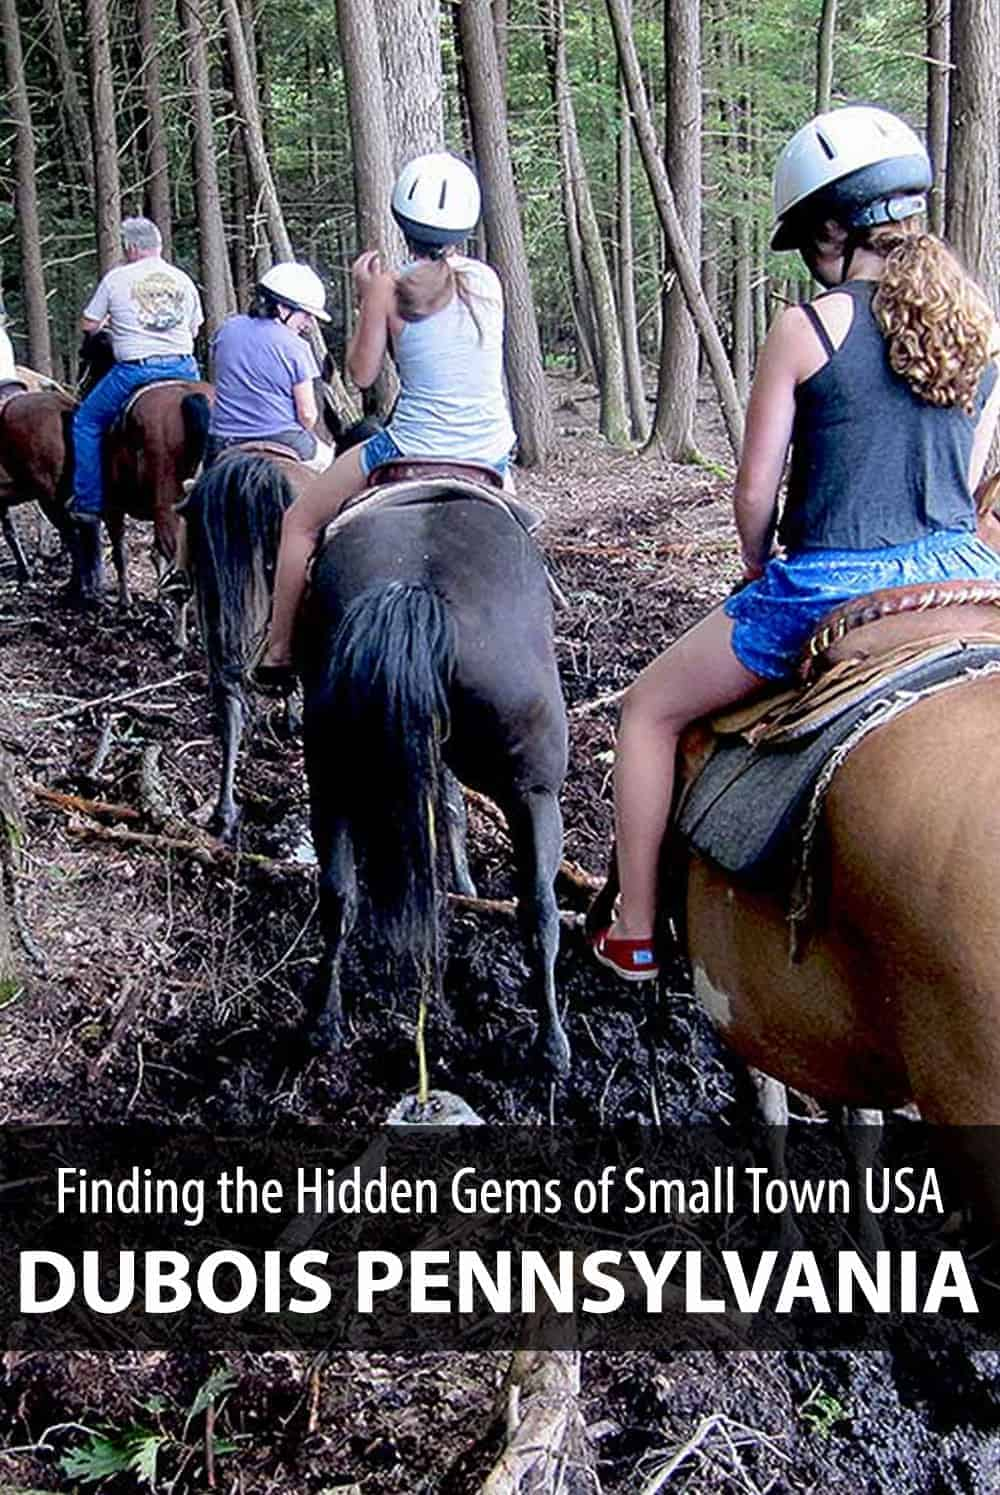 Finding the Hidden Gems of Small Town USA, DuBois Pennsylvania